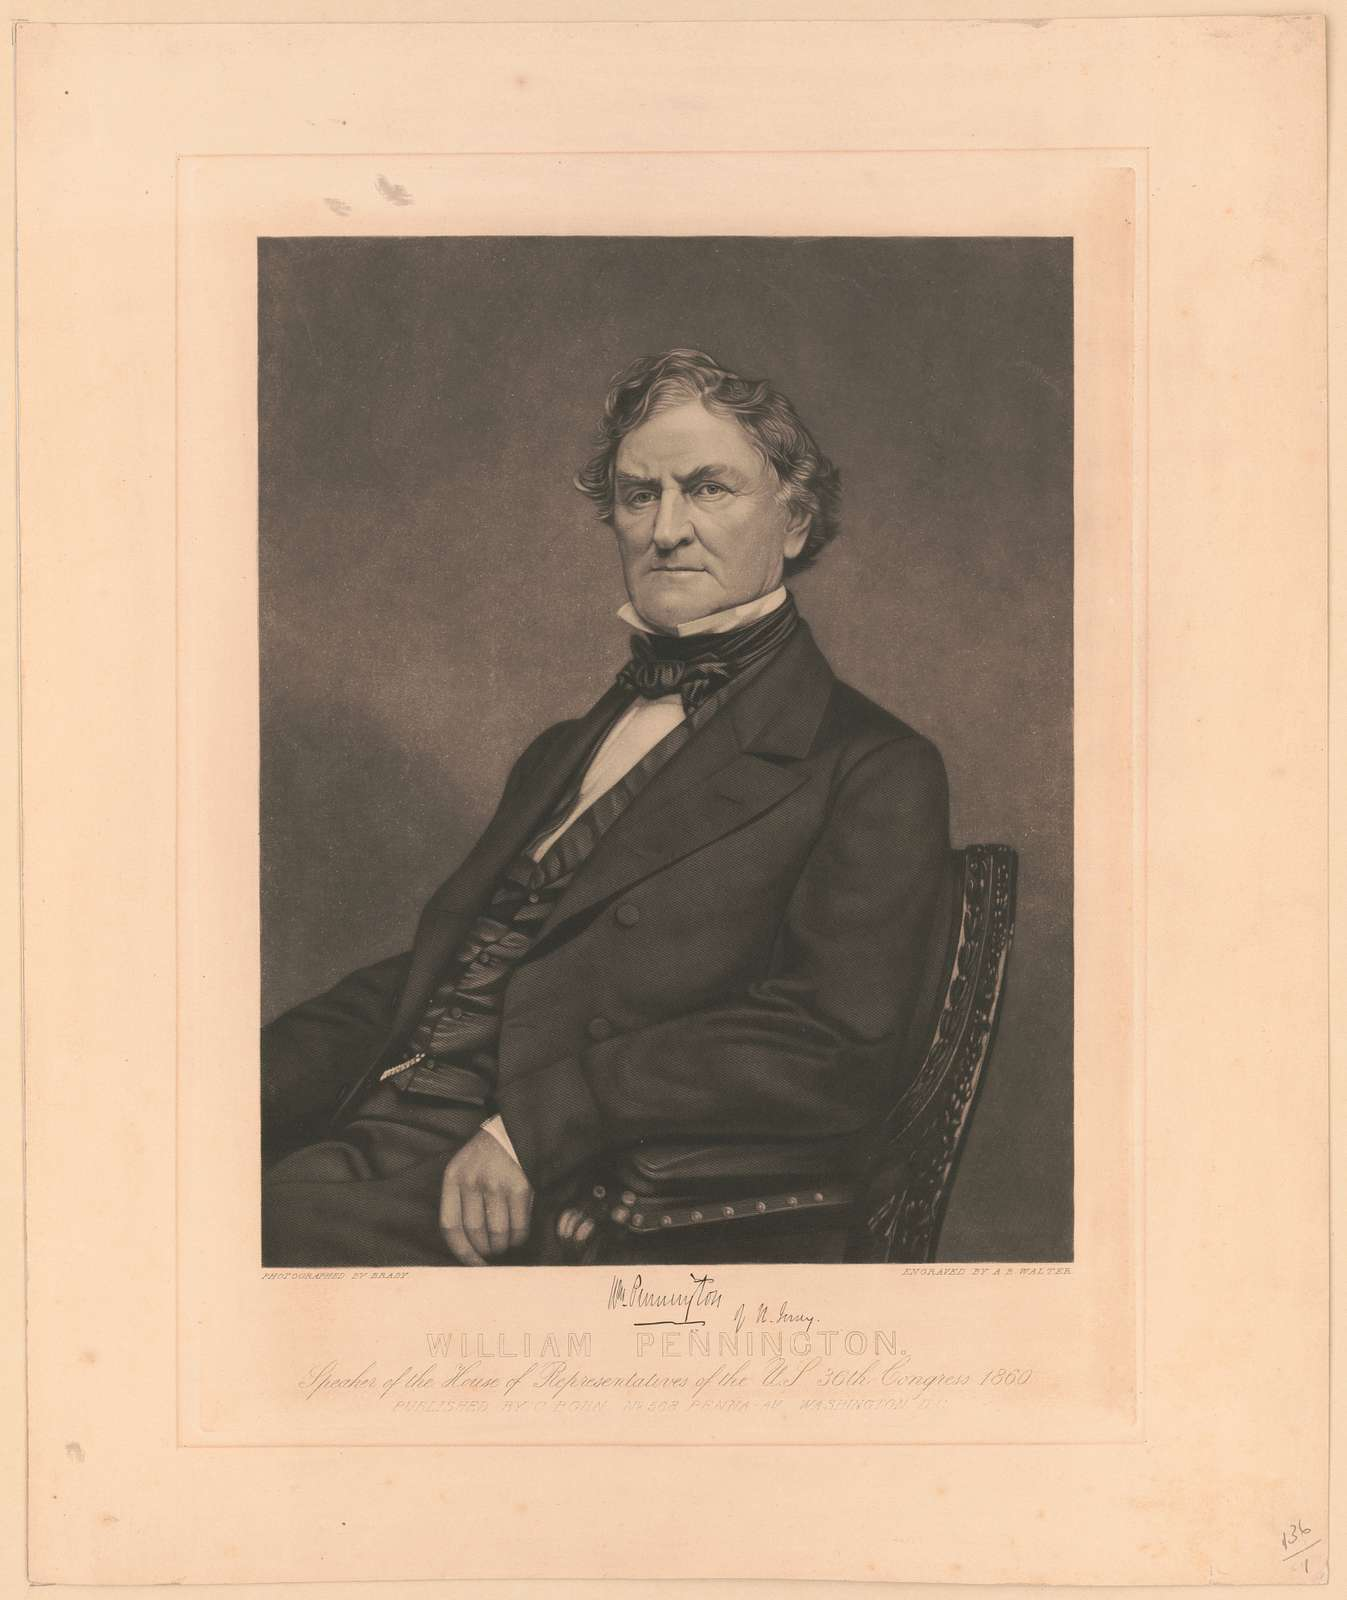 William Pennington. Speaker of the House of Representatives of the U.S. 36th Congress 1860 / photographed by Brady ; engraved by A.B. Walter.